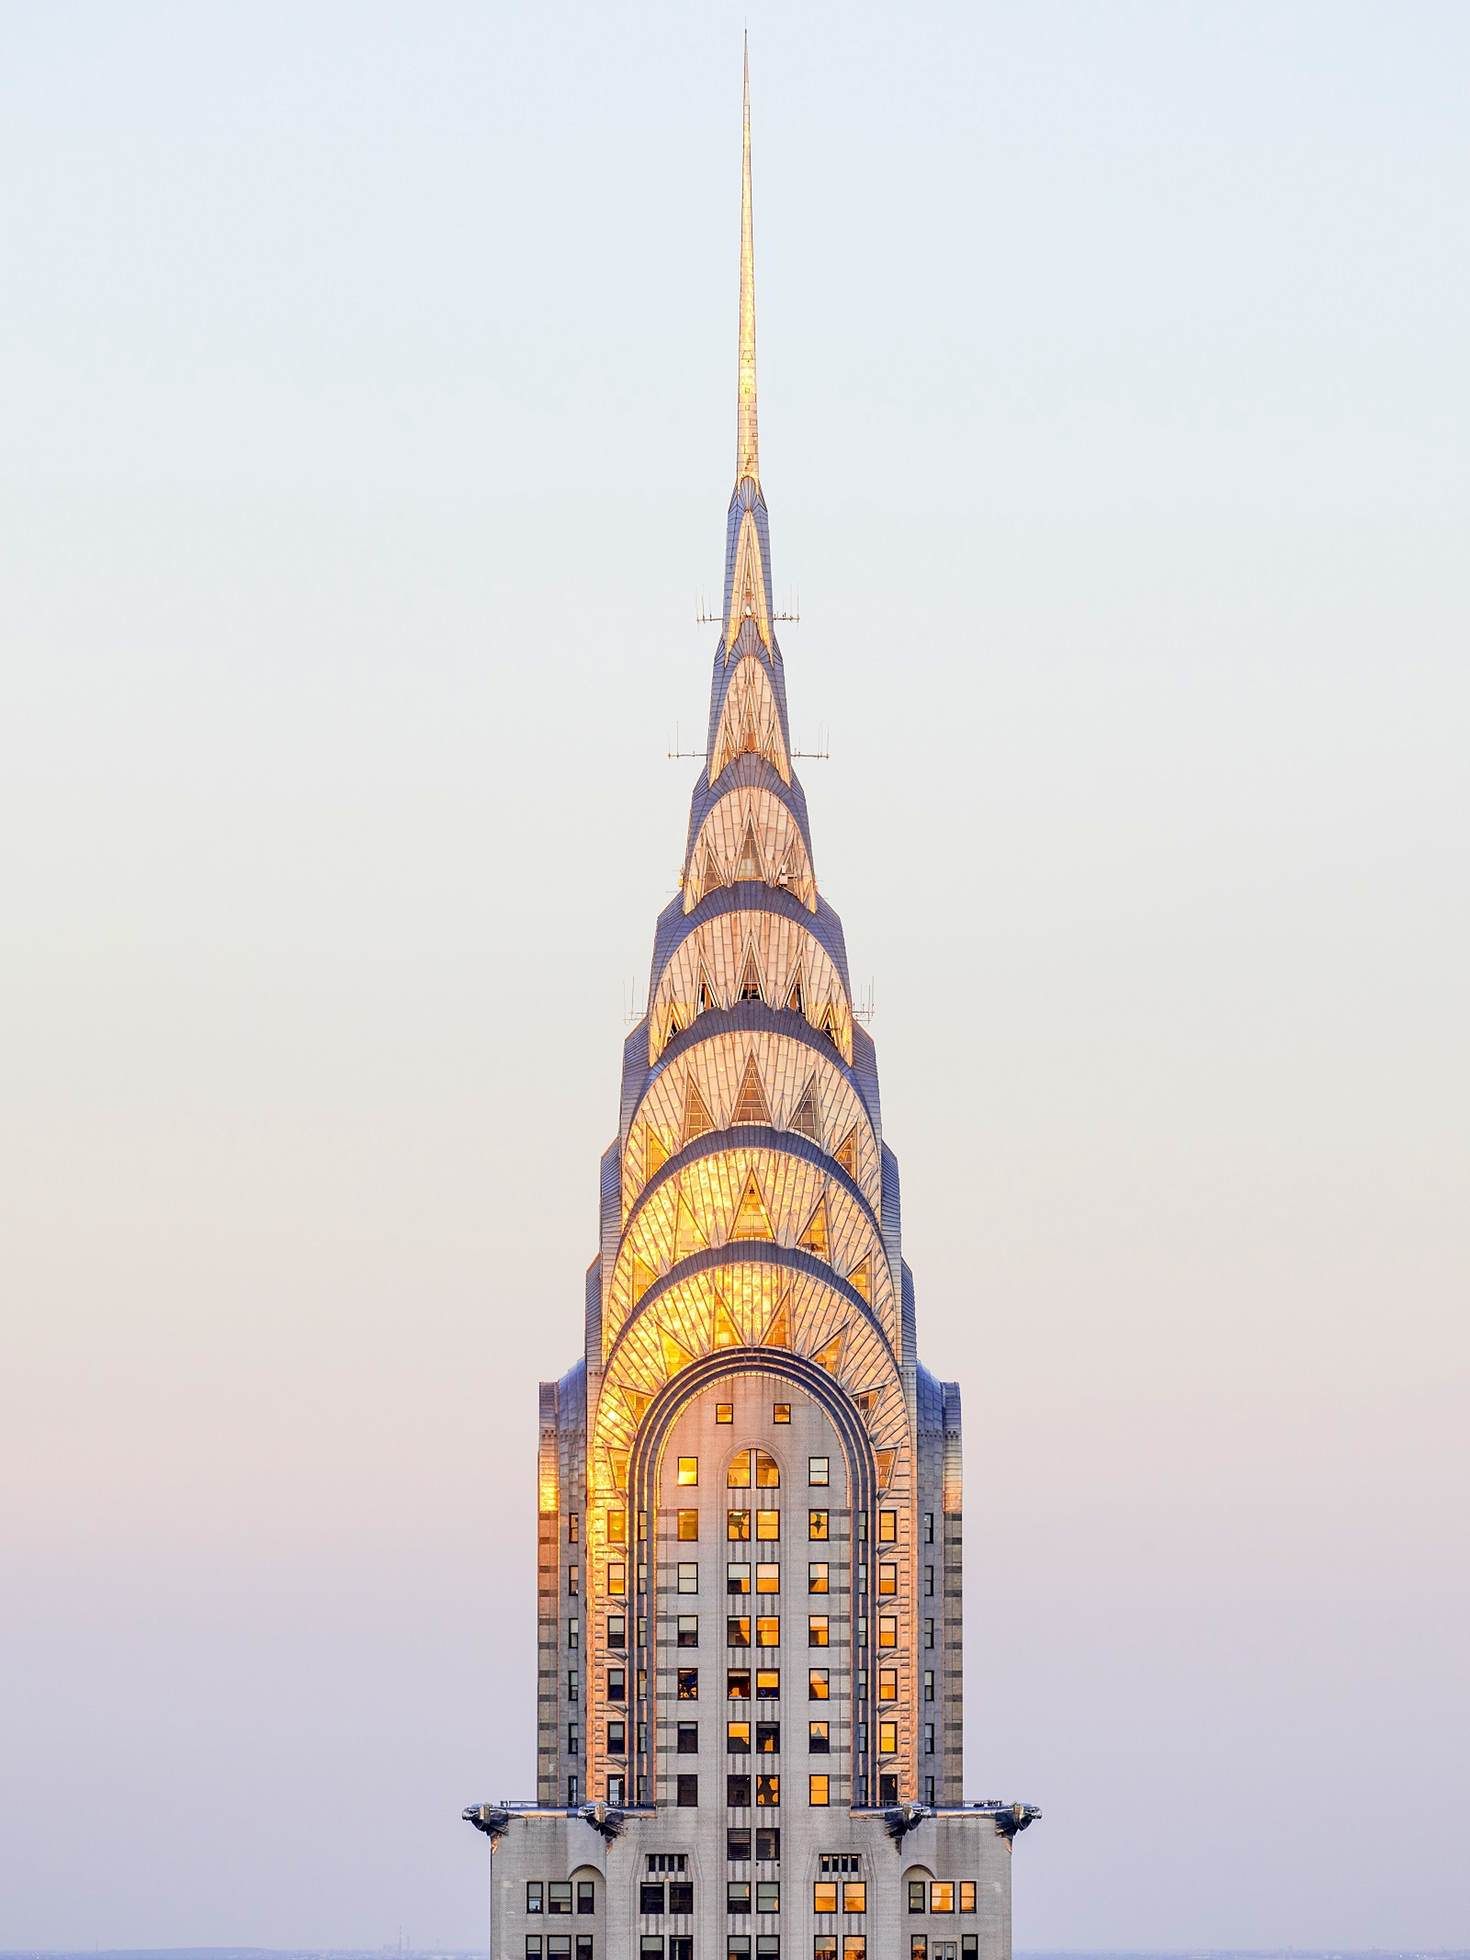 Chrysler building, New York City © C. Taylor Crothers / Getty Images